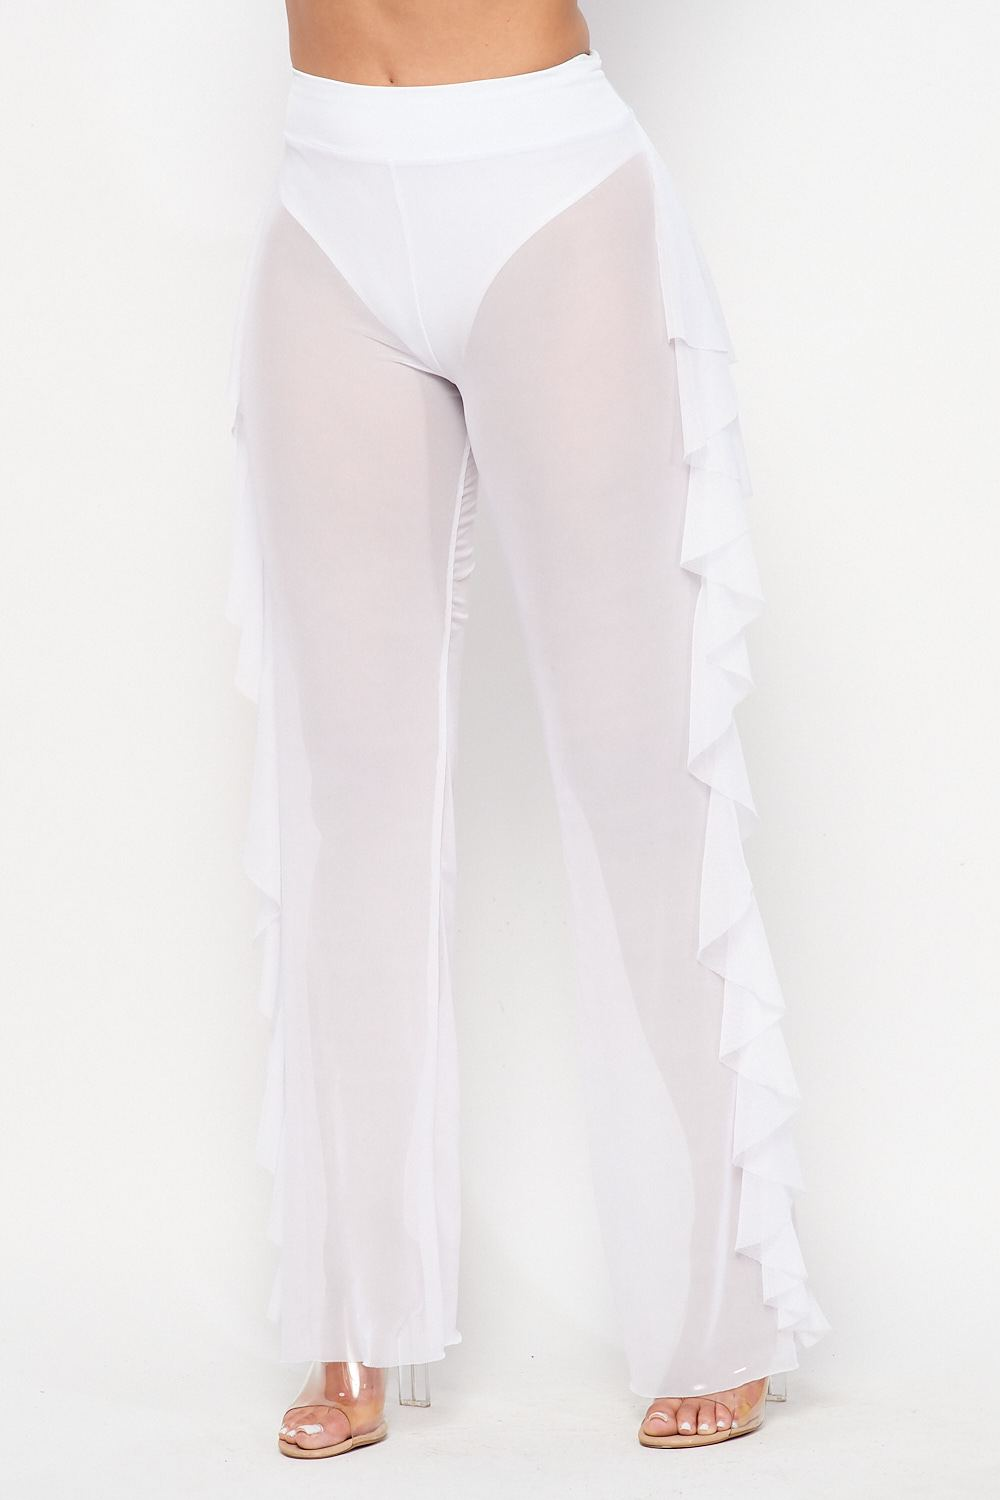 Hot See Through Mesh Ruffle Bottoms in White - Fashion House USA